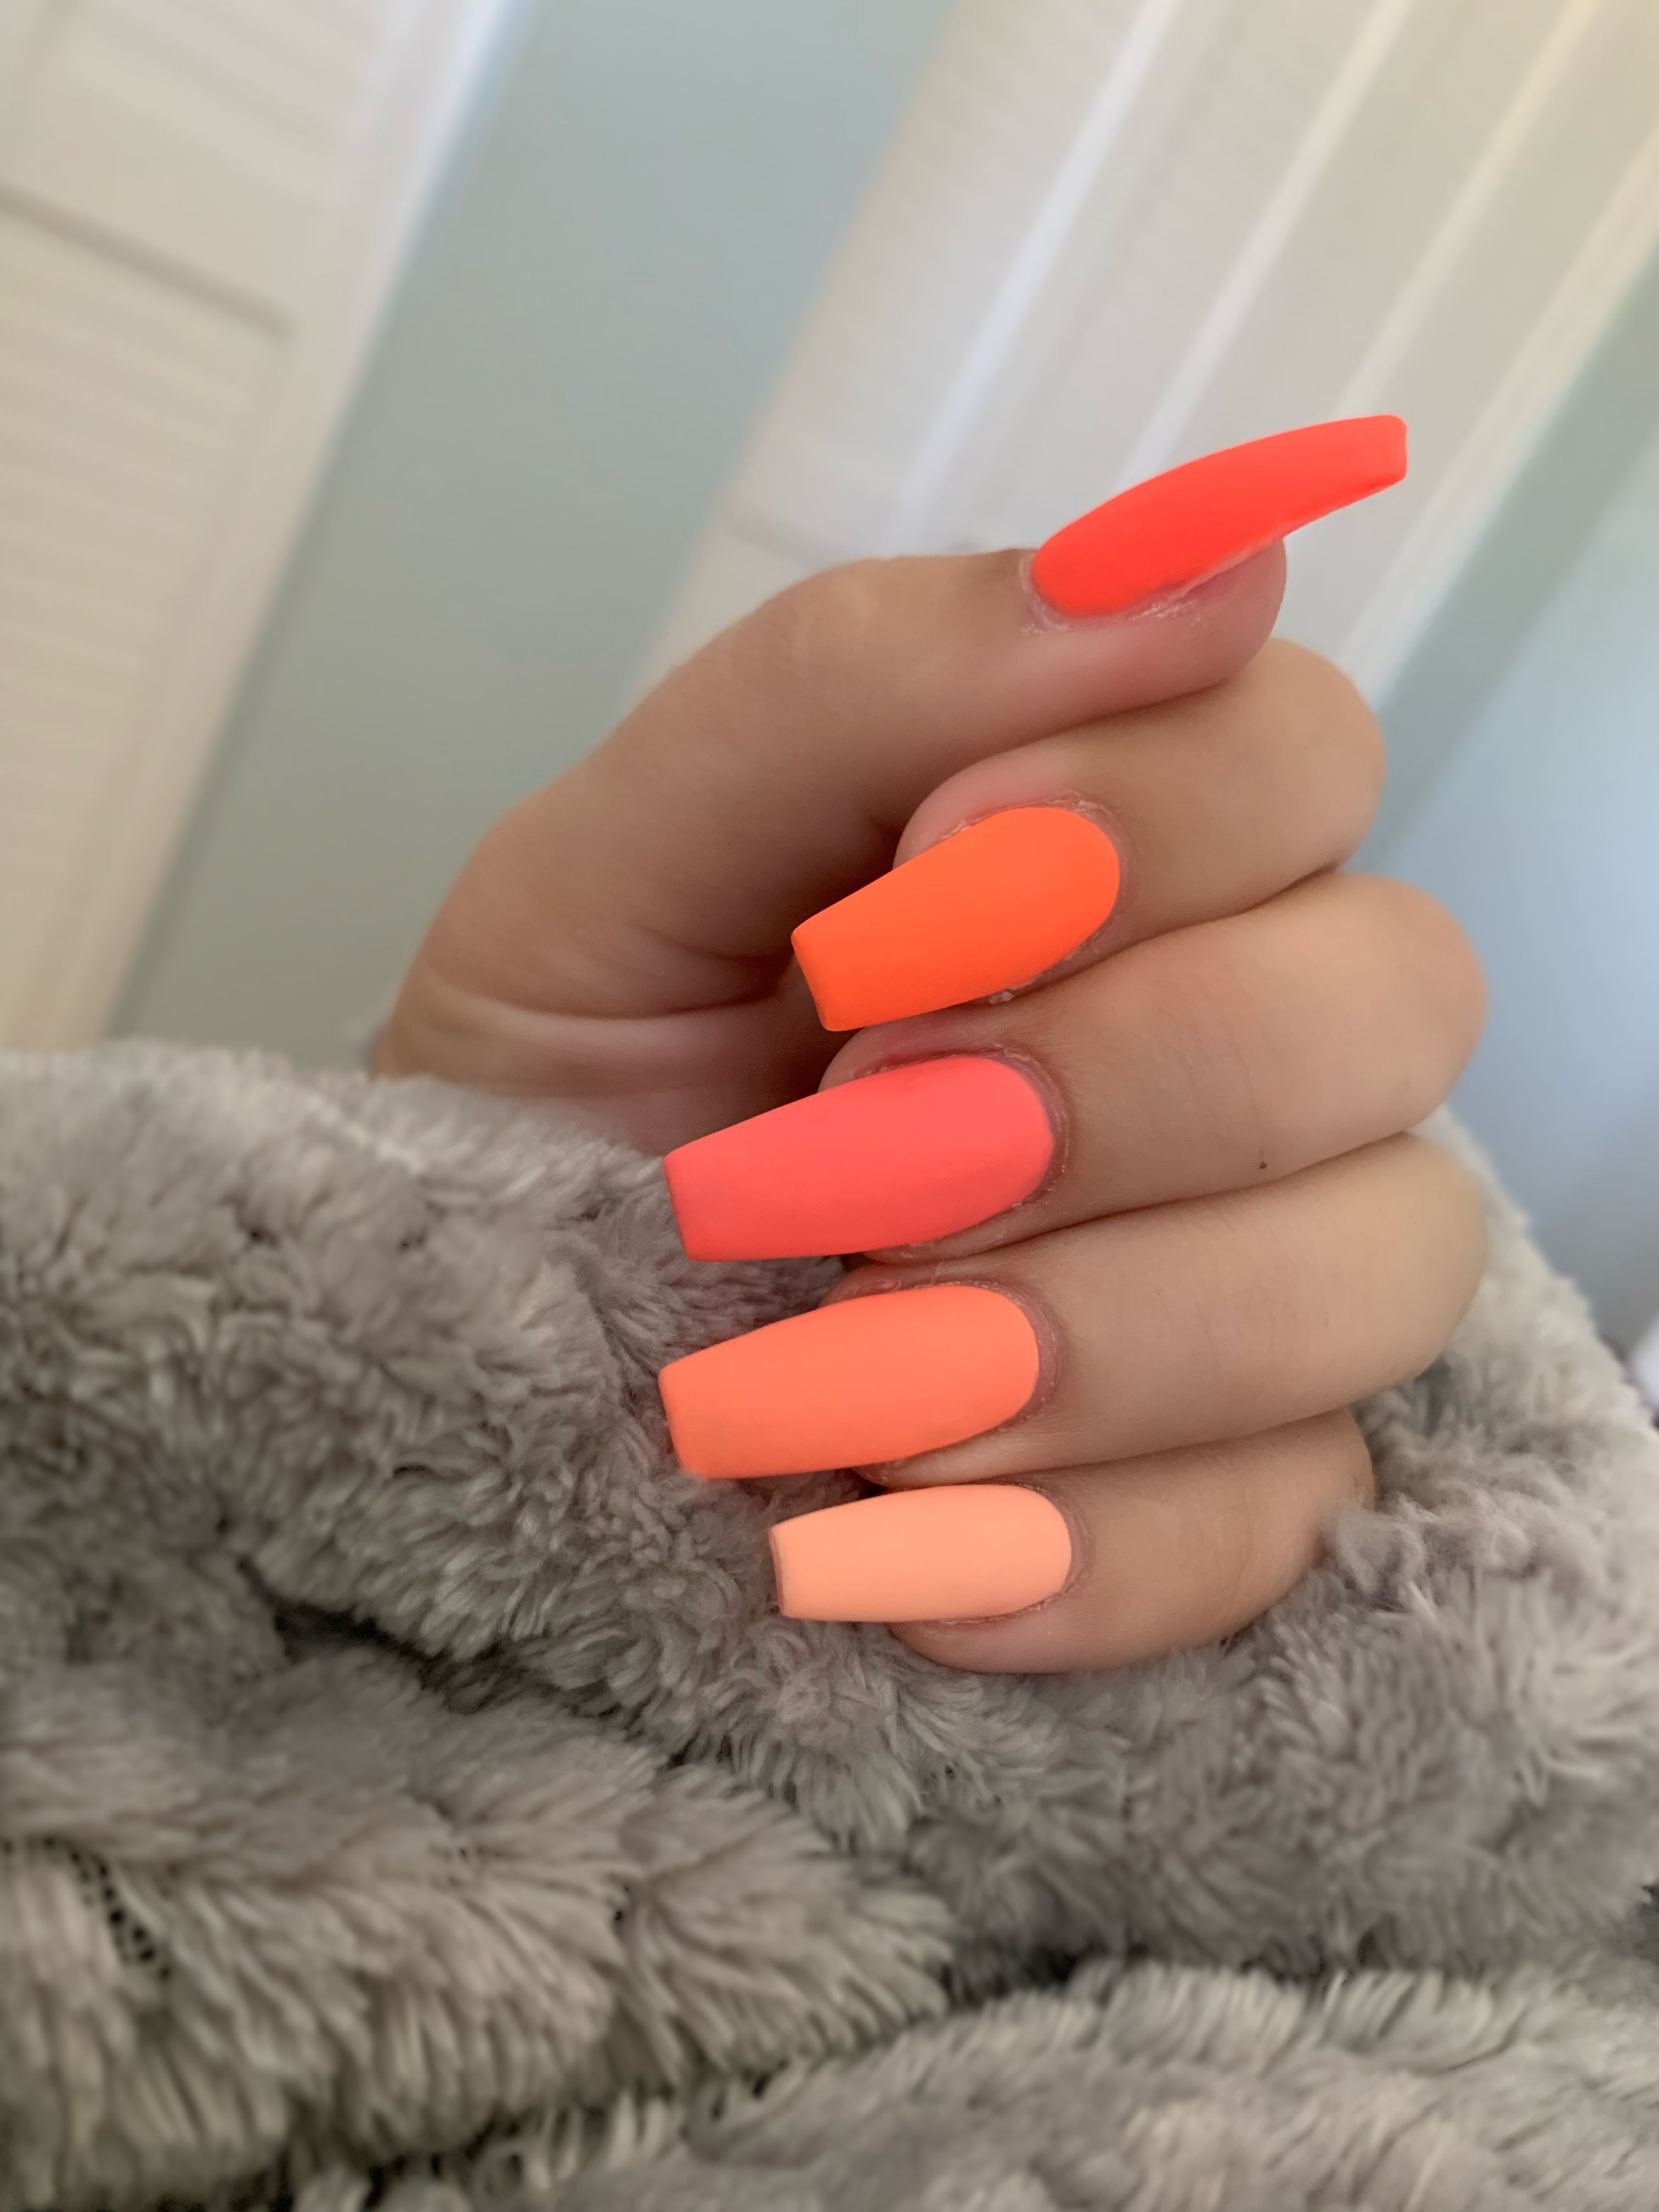 Hawaii Nails Coffin Nails Ombre Pink Ombre Nails Orange Acrylic Nails